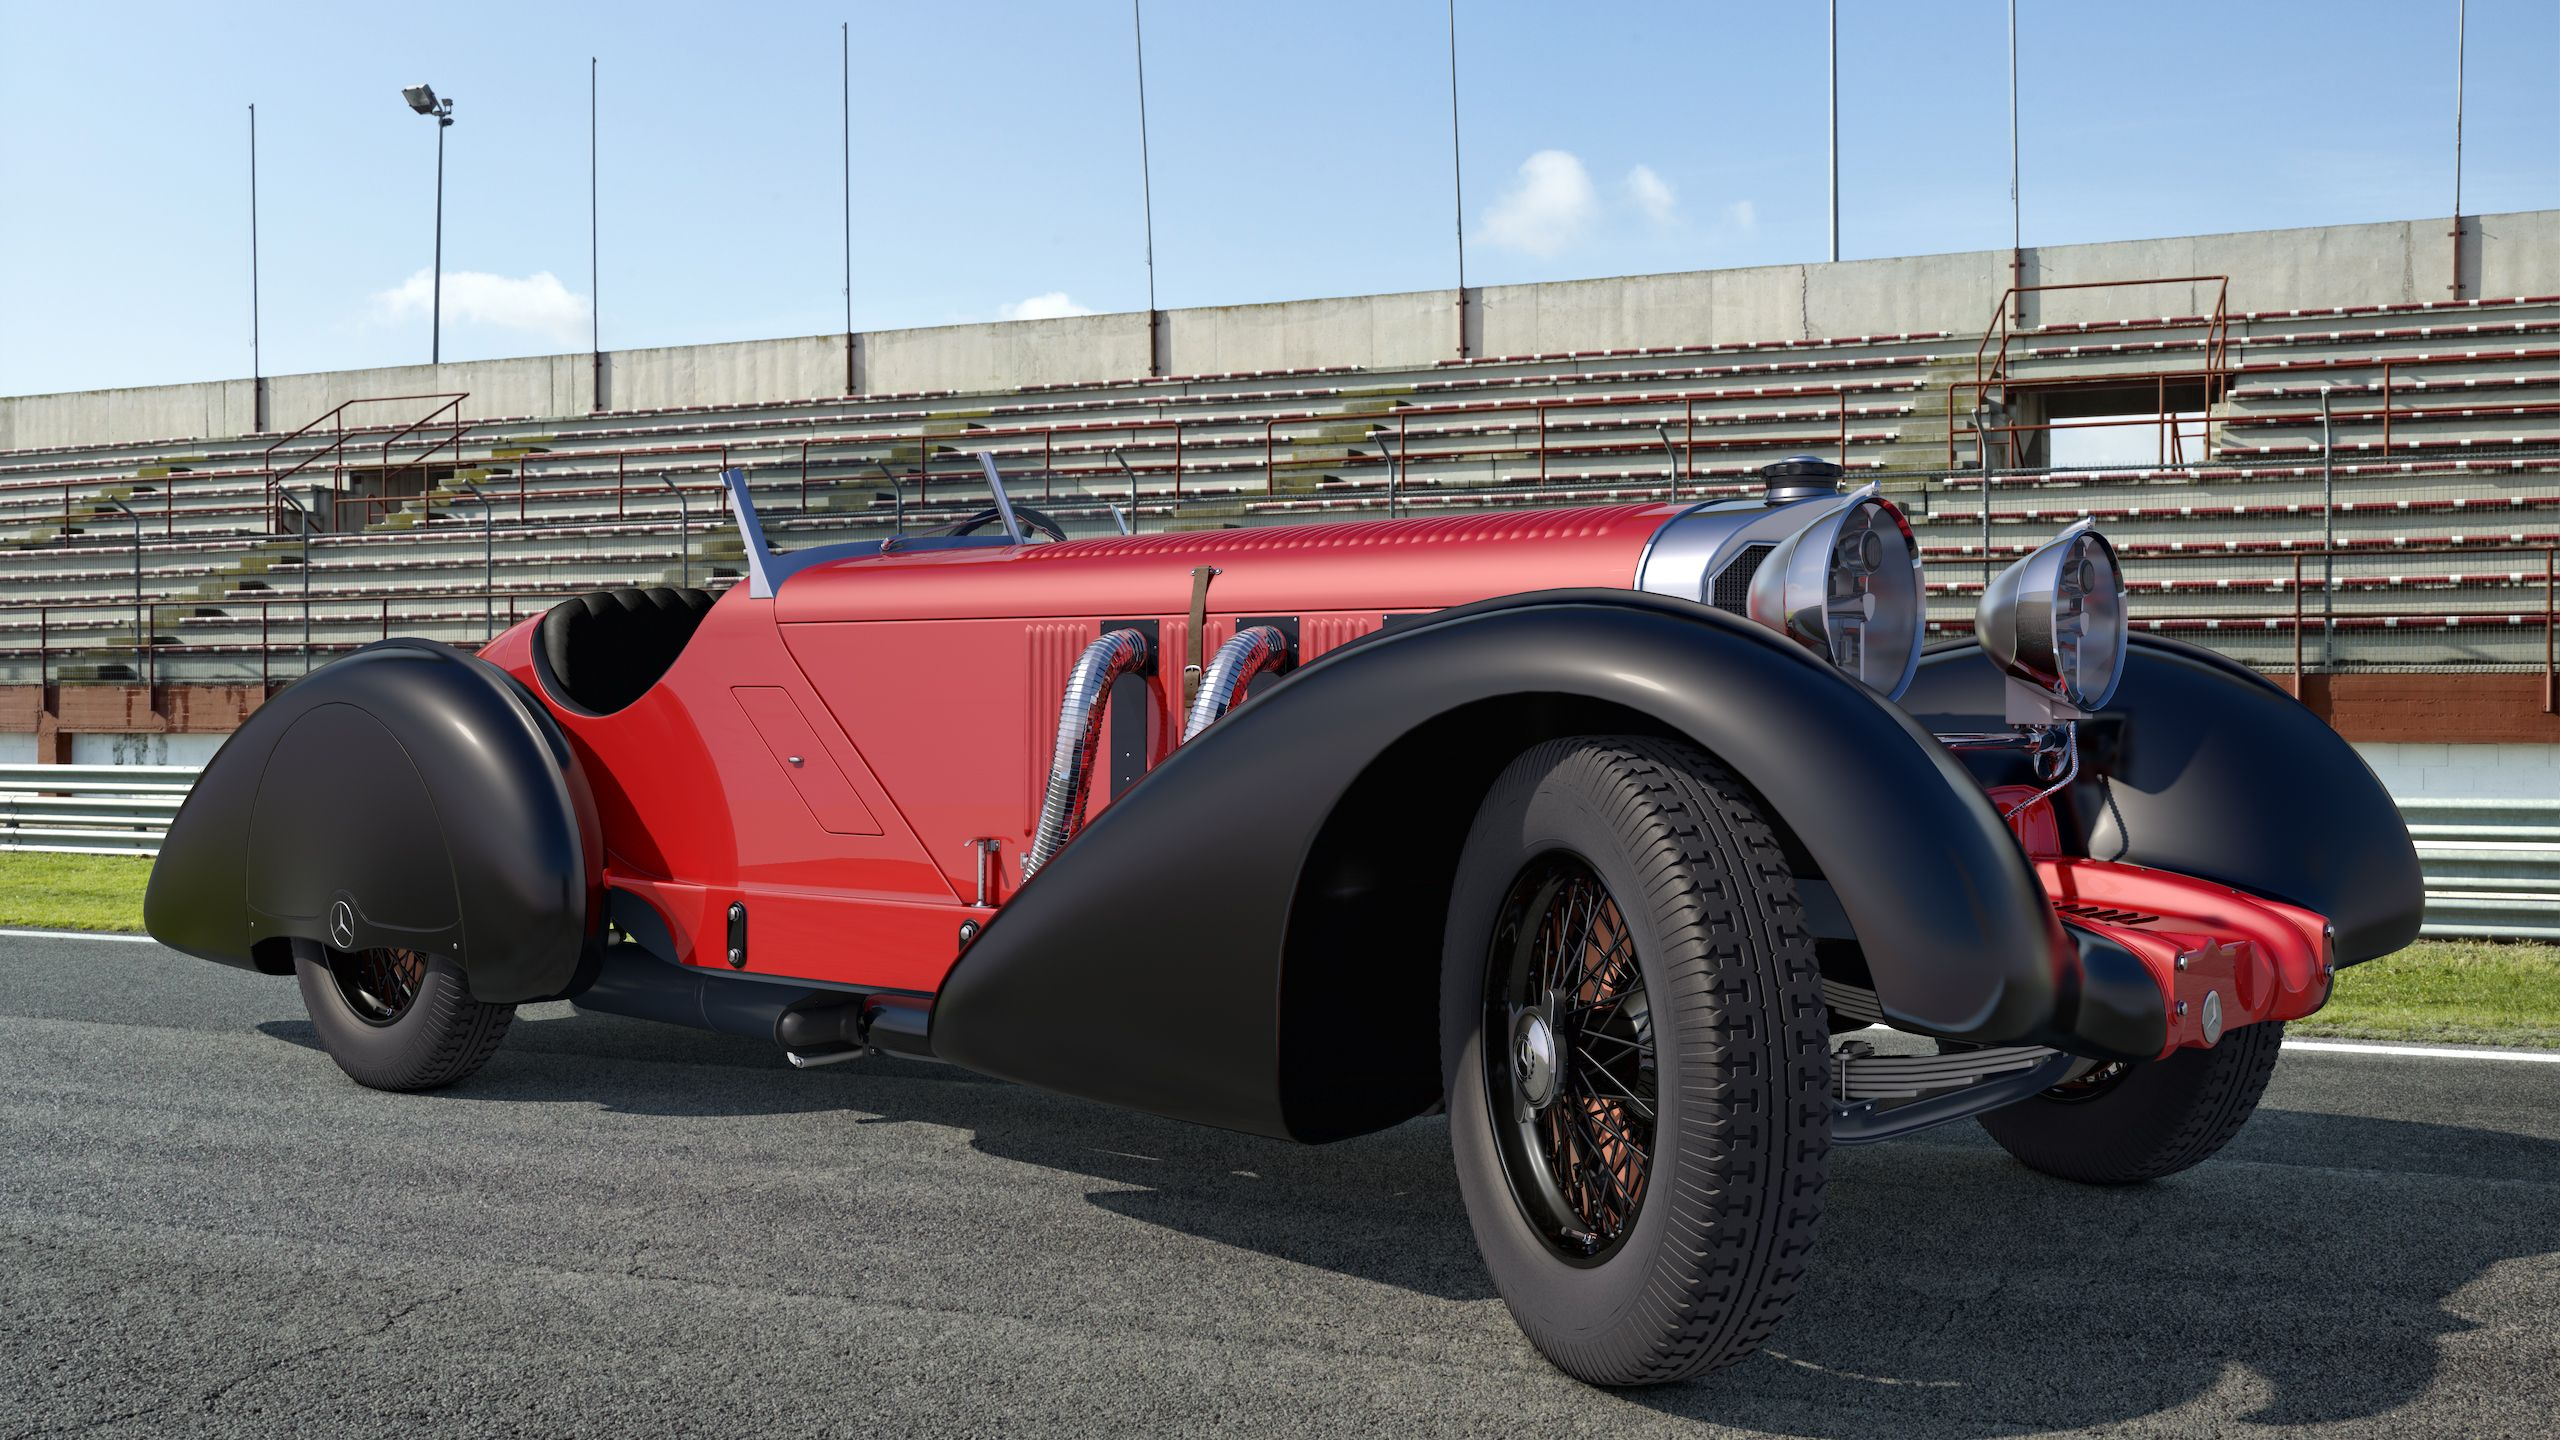 1930 Mercedes Benz 710 Ssk Trossi Roadster By Samcurry Deviantart Com On Deviantart Mercedes Benz Roadsters